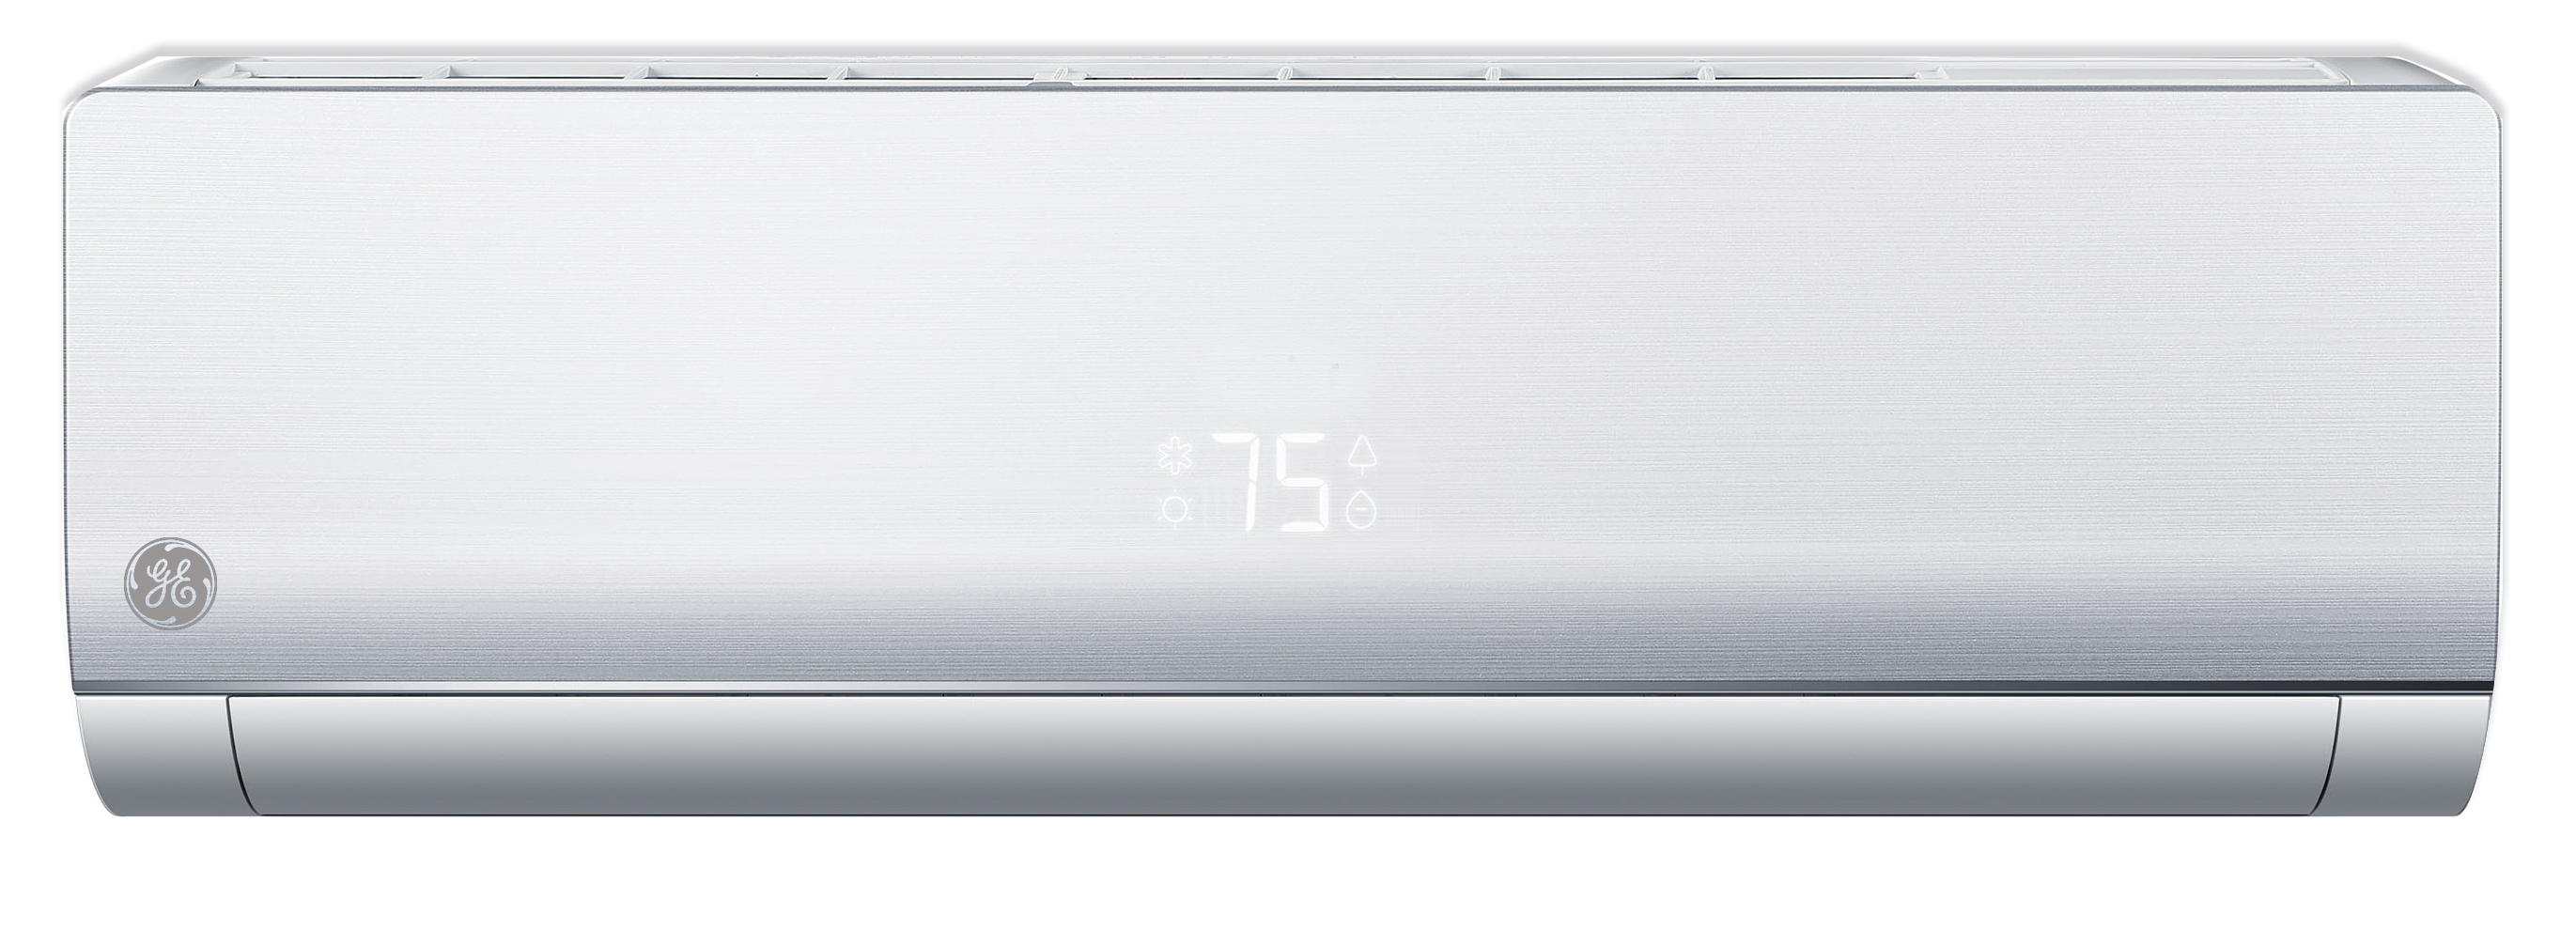 GE ASYW07URDWA 7000 BTU Endure Multi Zone Indoor Wall Unit - Heat and Cool - 208/230V